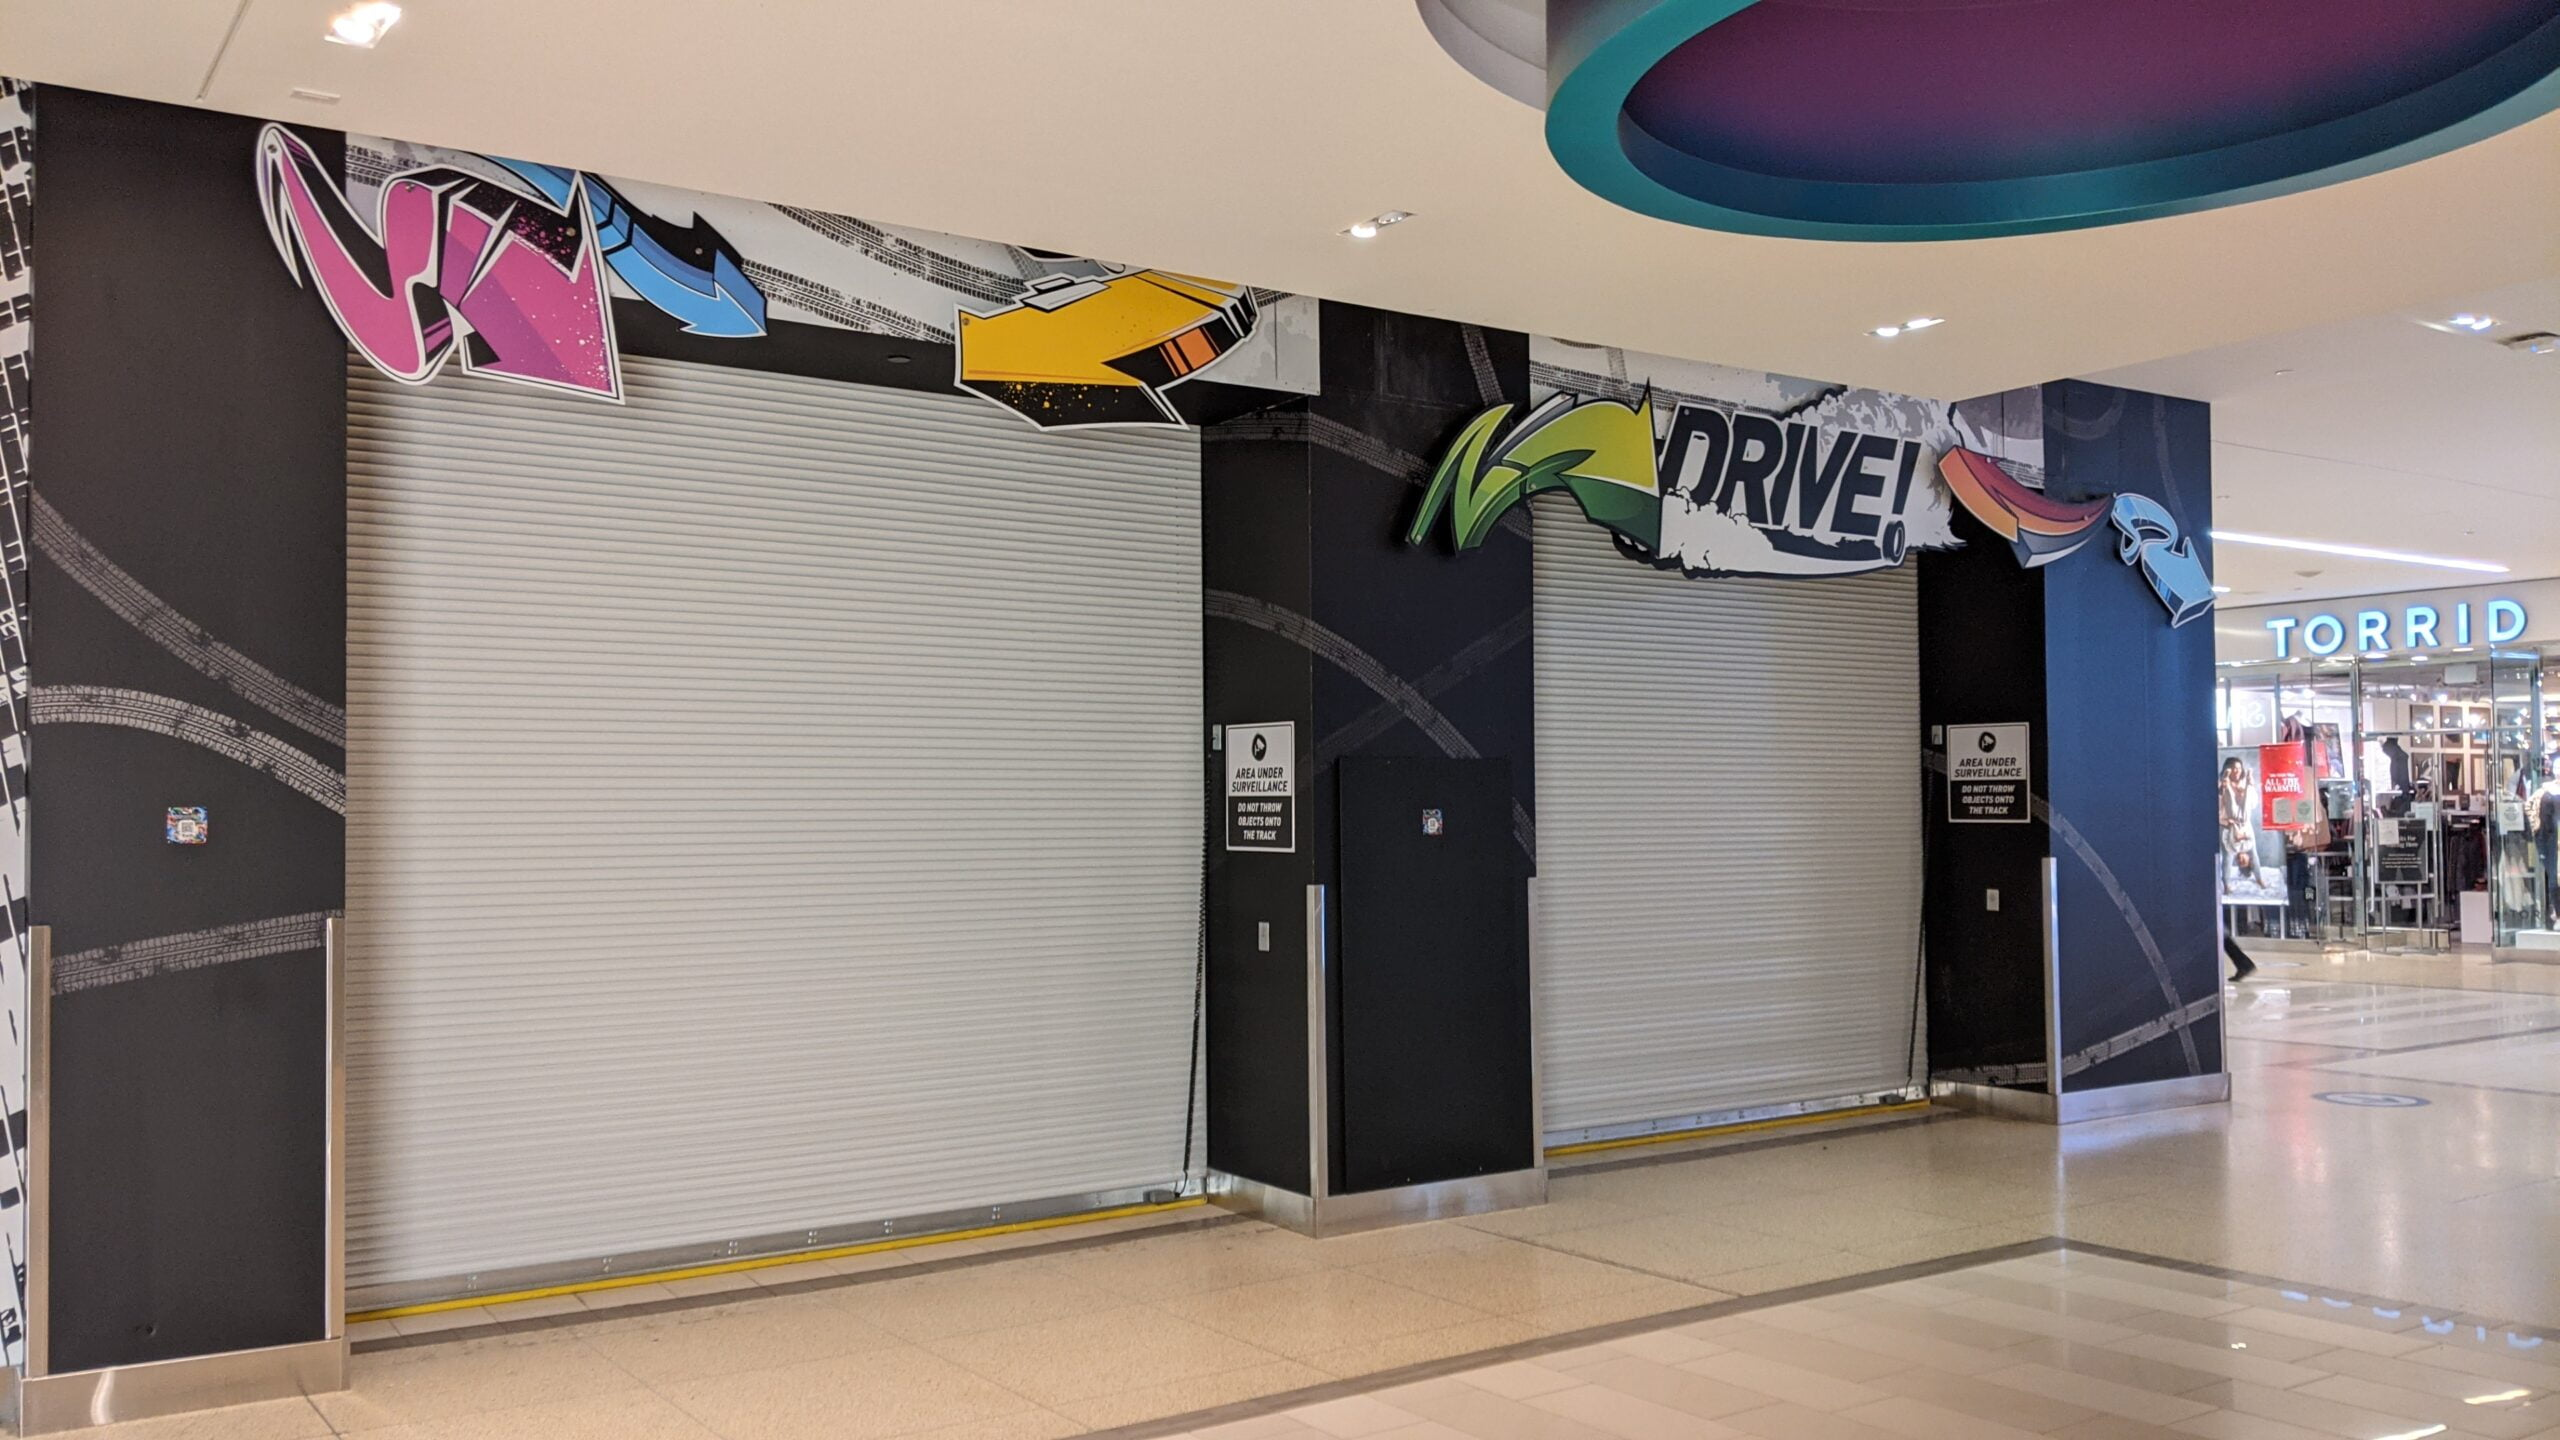 Drive! at West Edmonton Mall